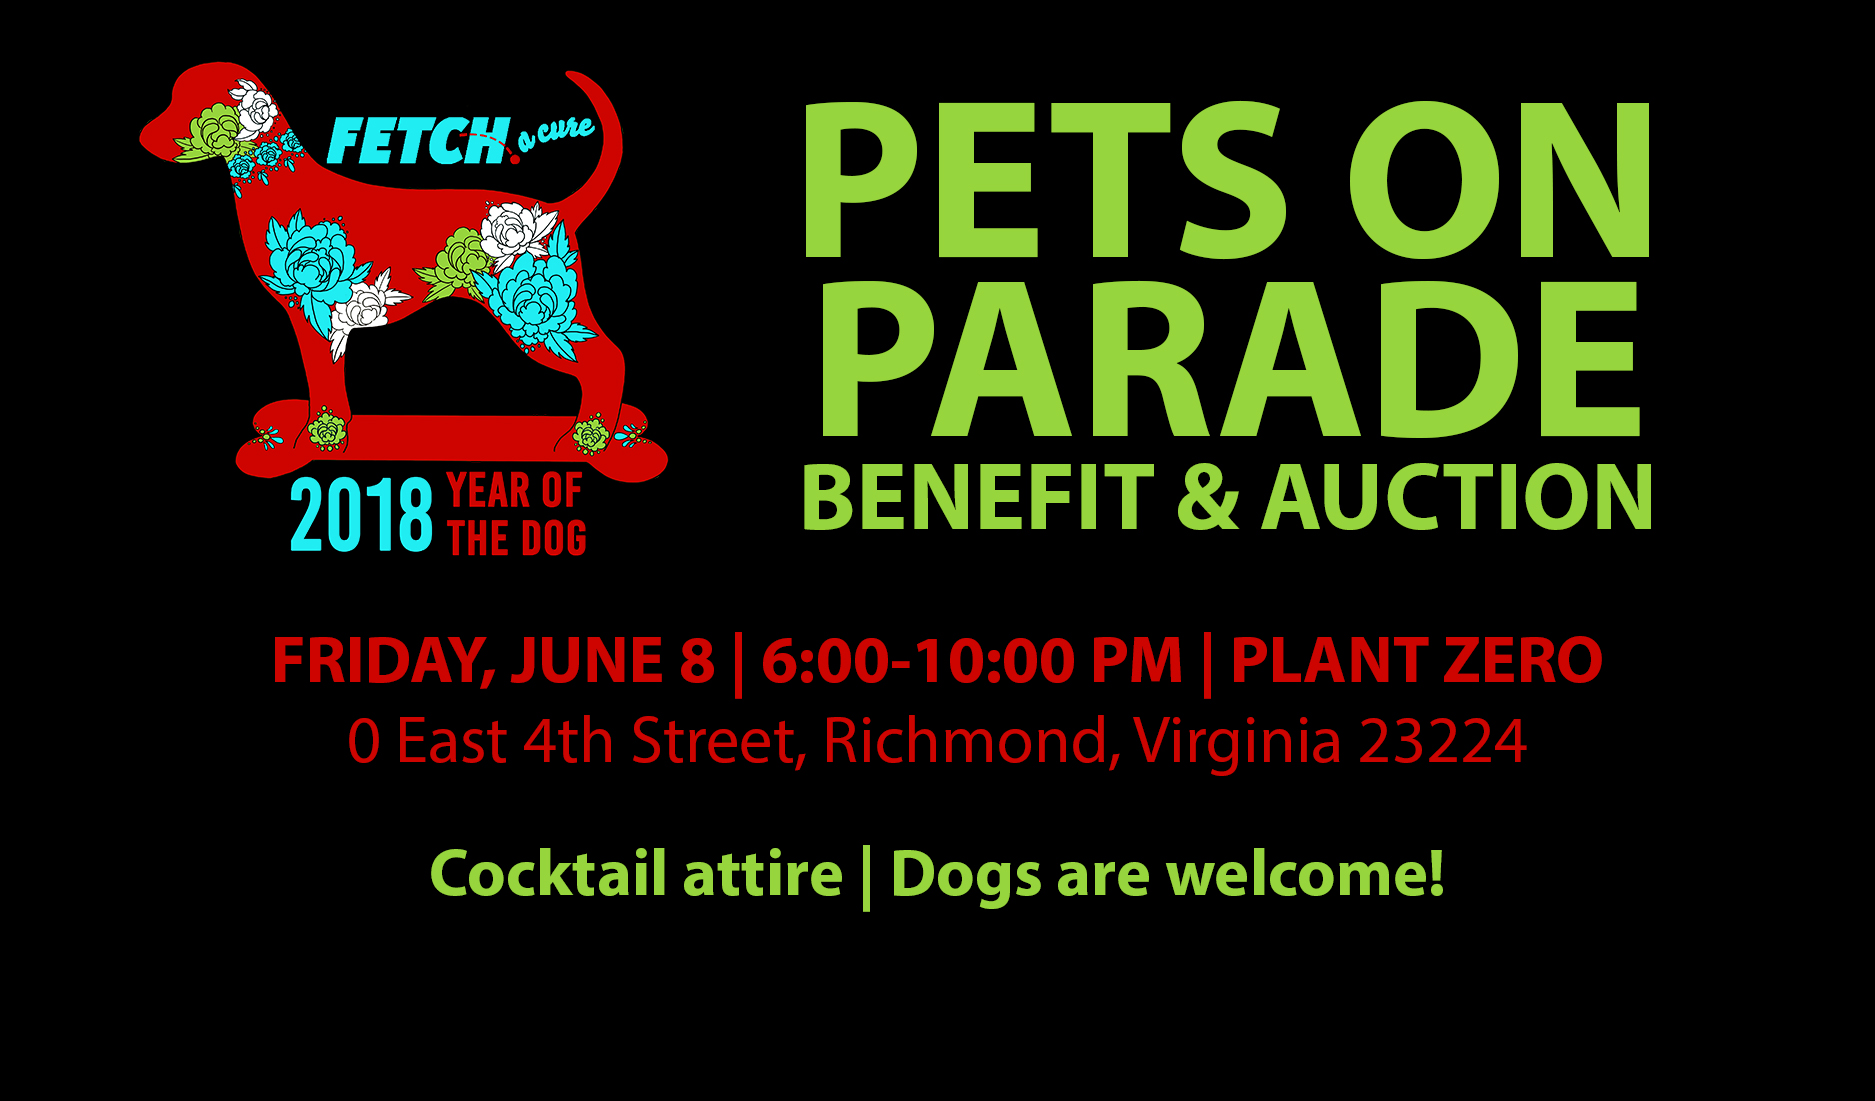 11th Annual Pets on Parade Benefit & Auction